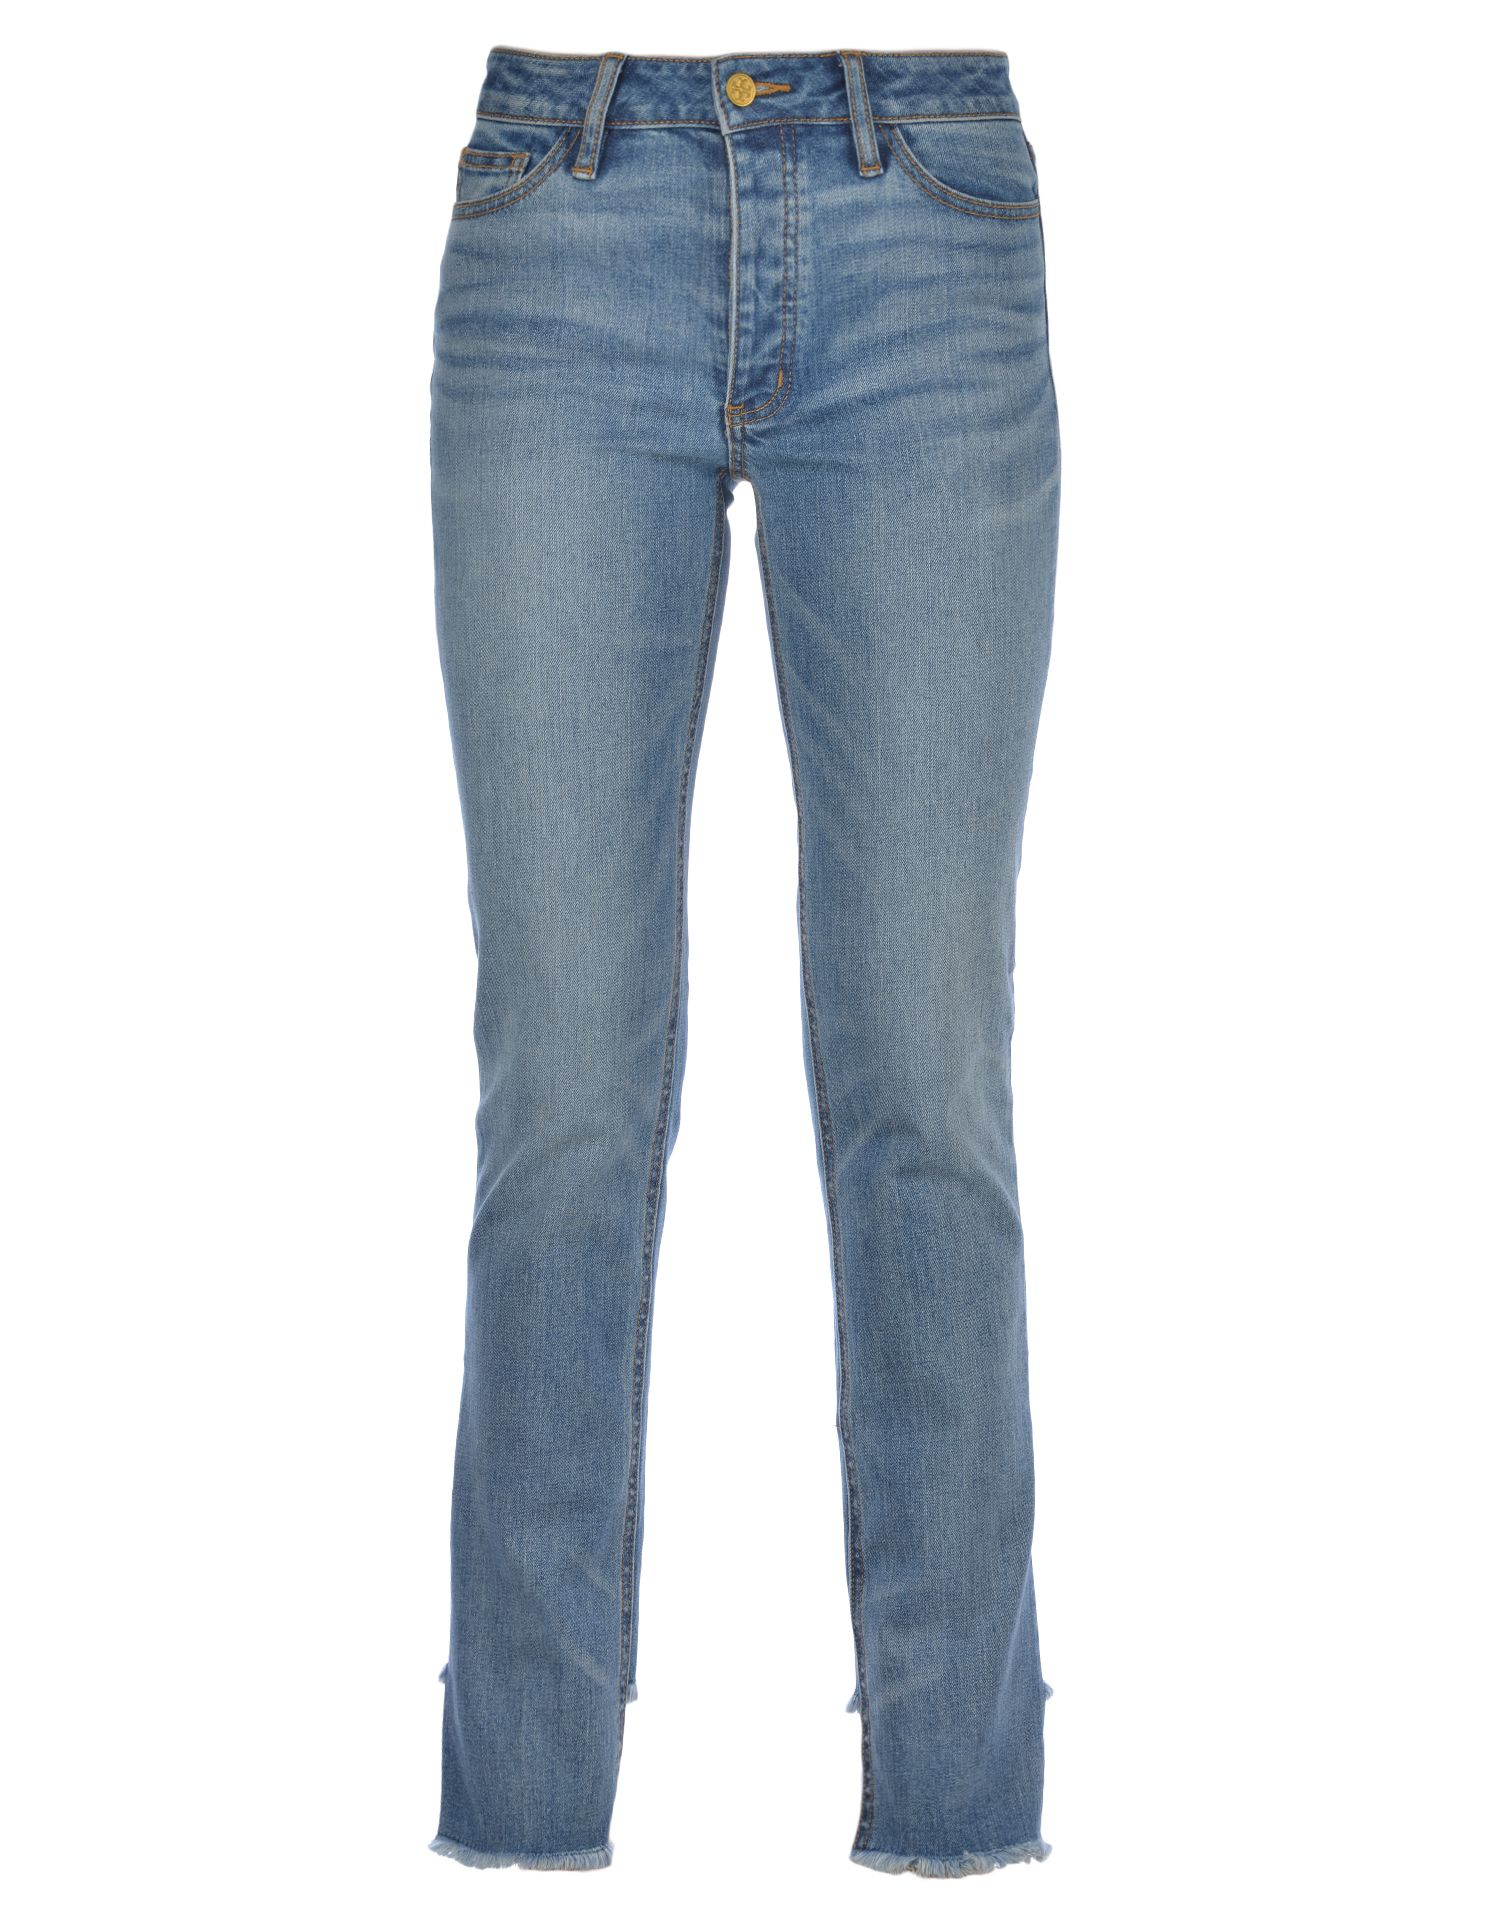 Tory Burch Cotton Jeans